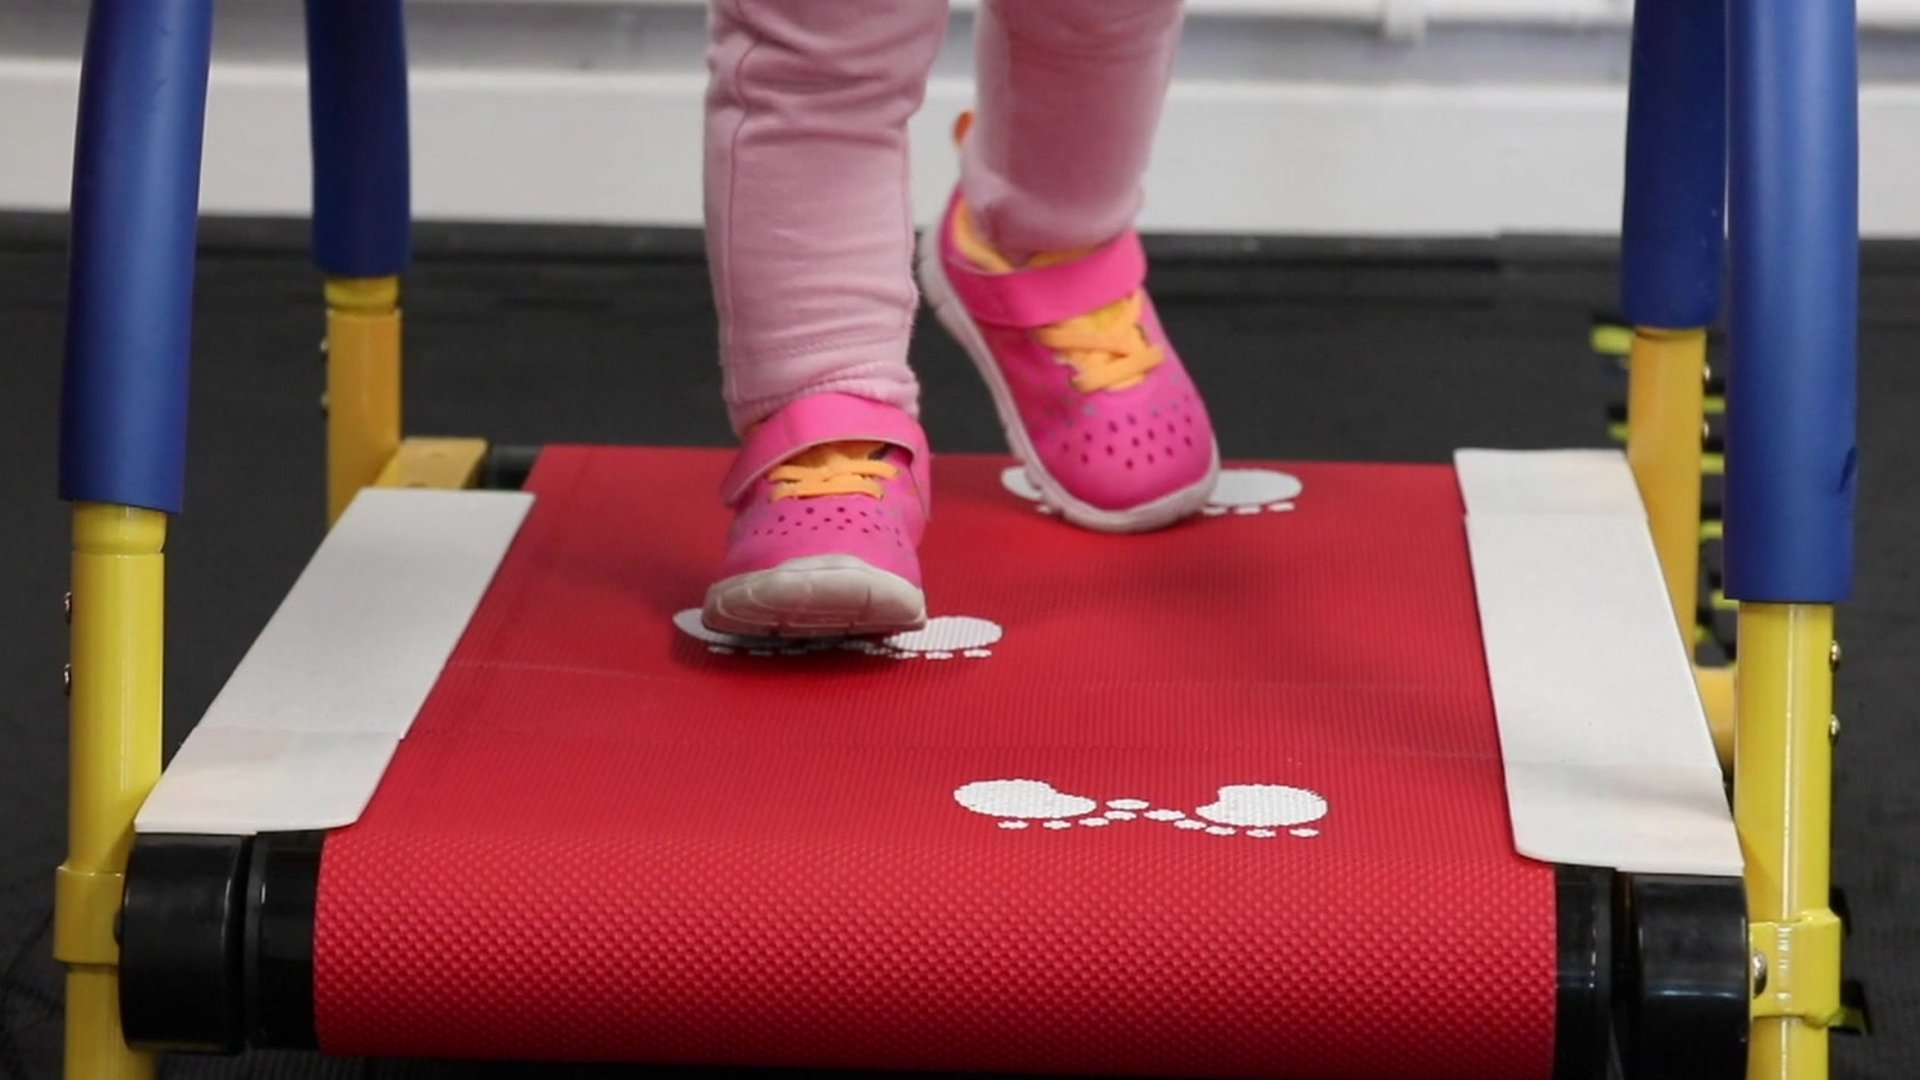 The Teesside gym with treadmills for toddlers